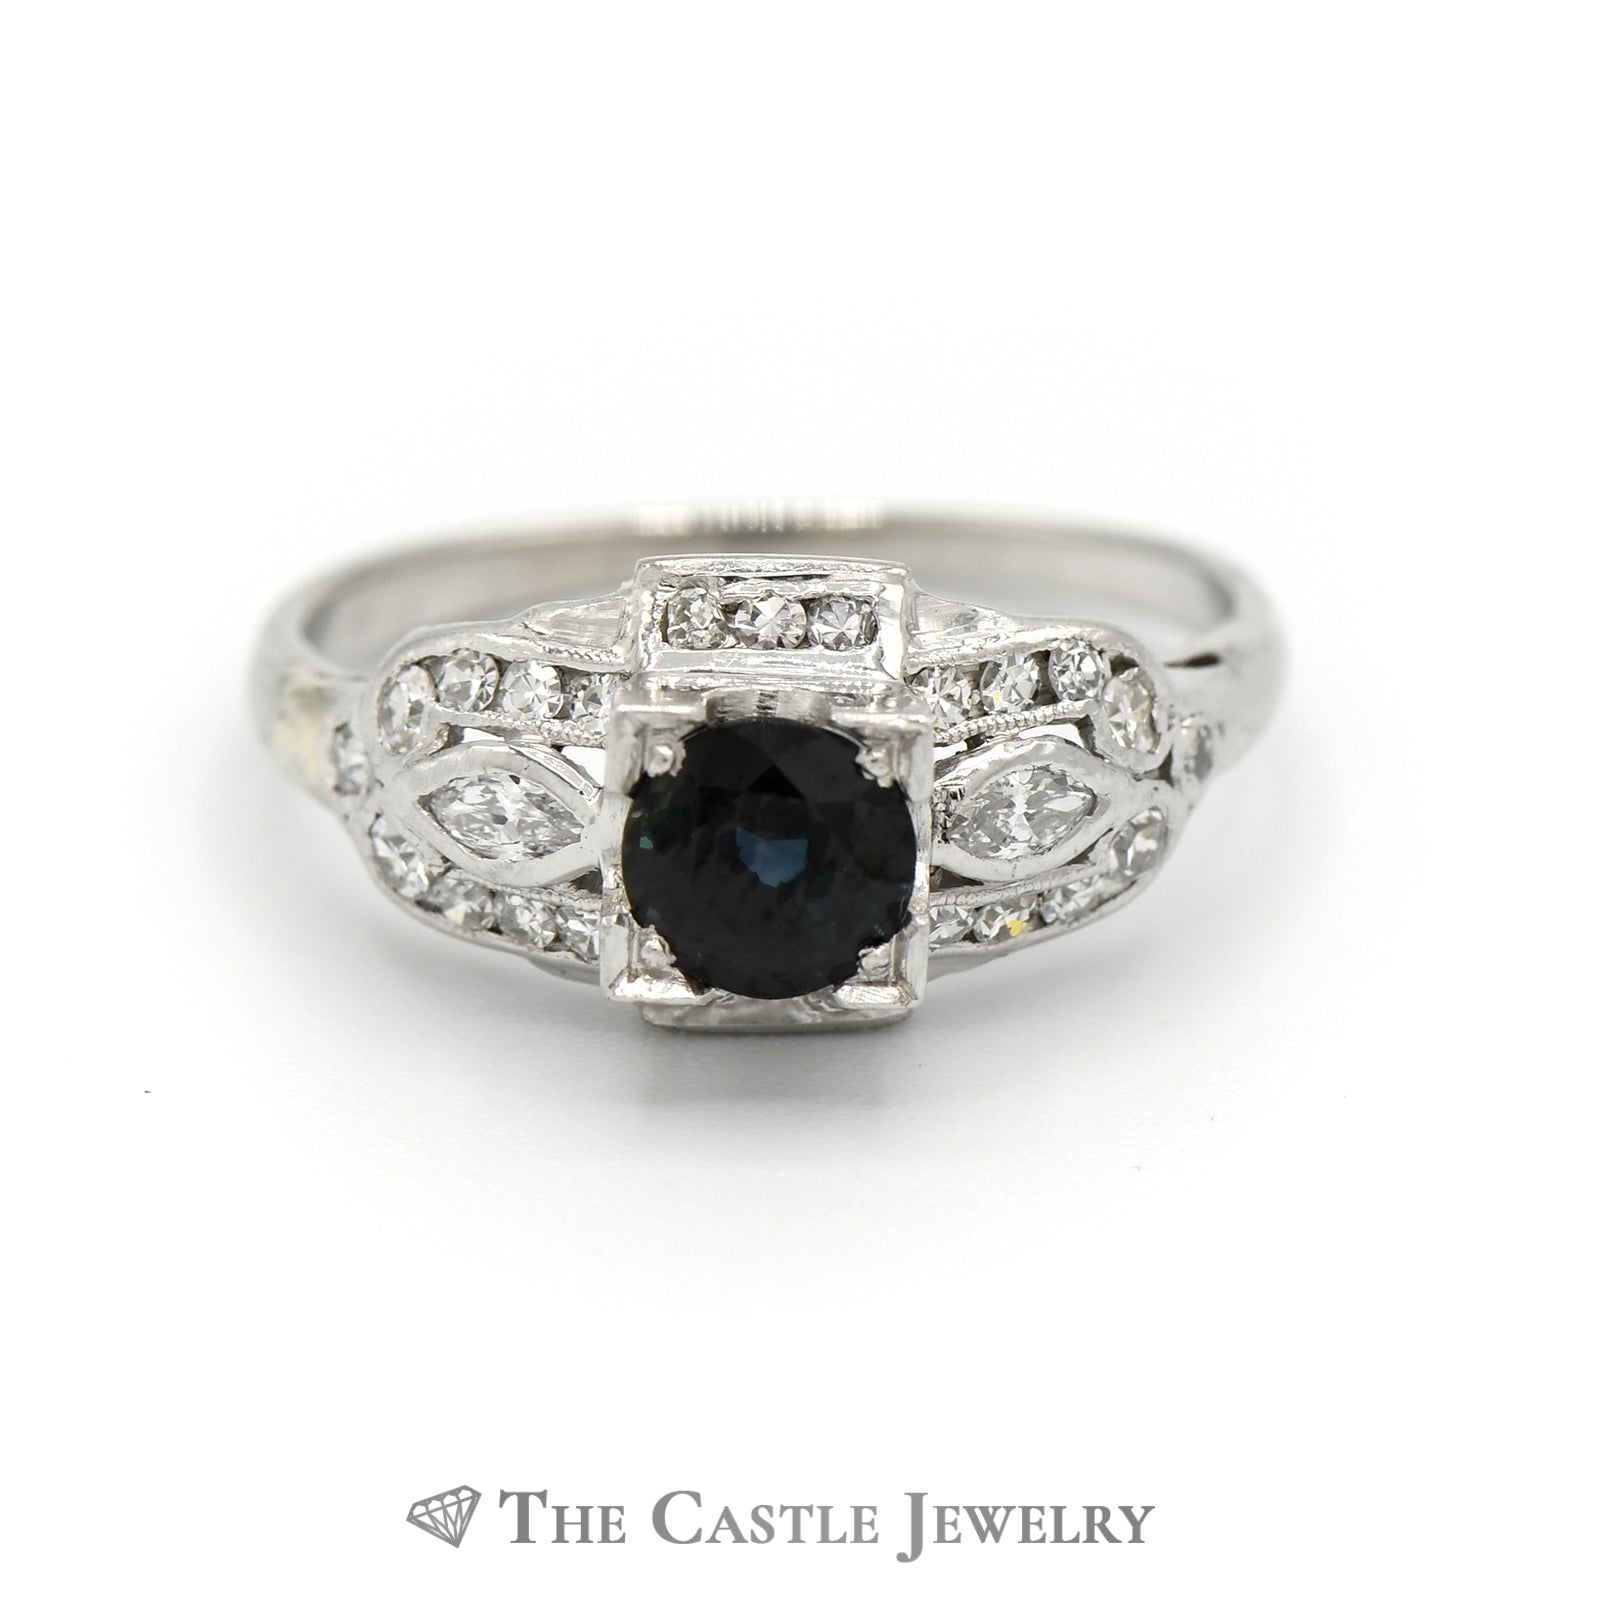 Antique Style Sapphire And Diamond Ring in 14K White Gold